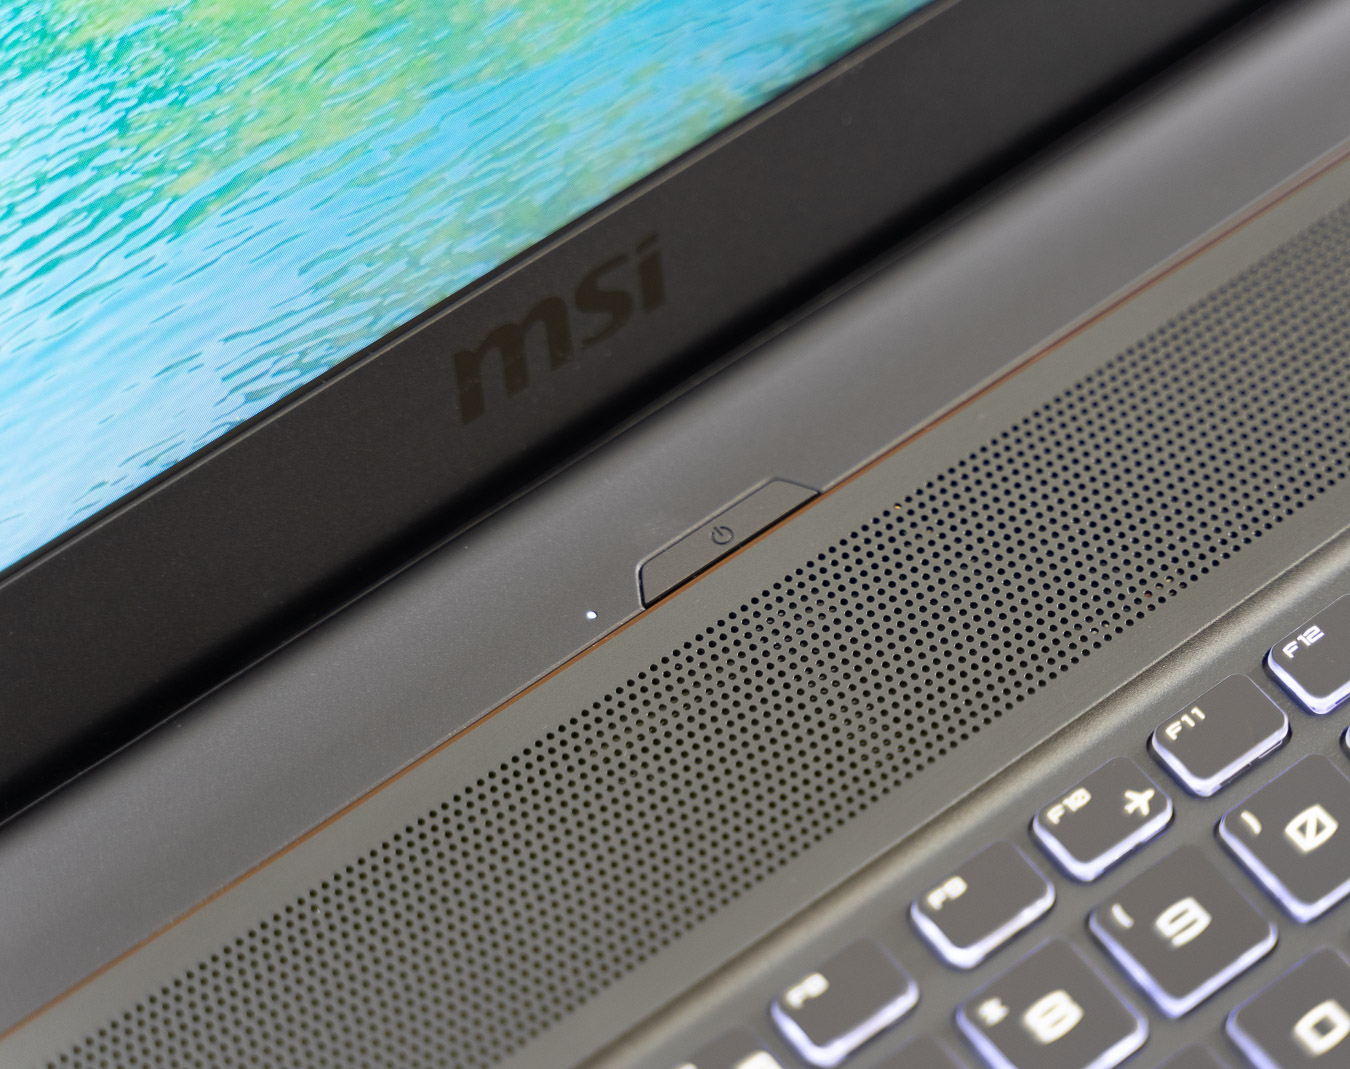 MSI WS75 workstation laptop review: slim yet mighty | IT World